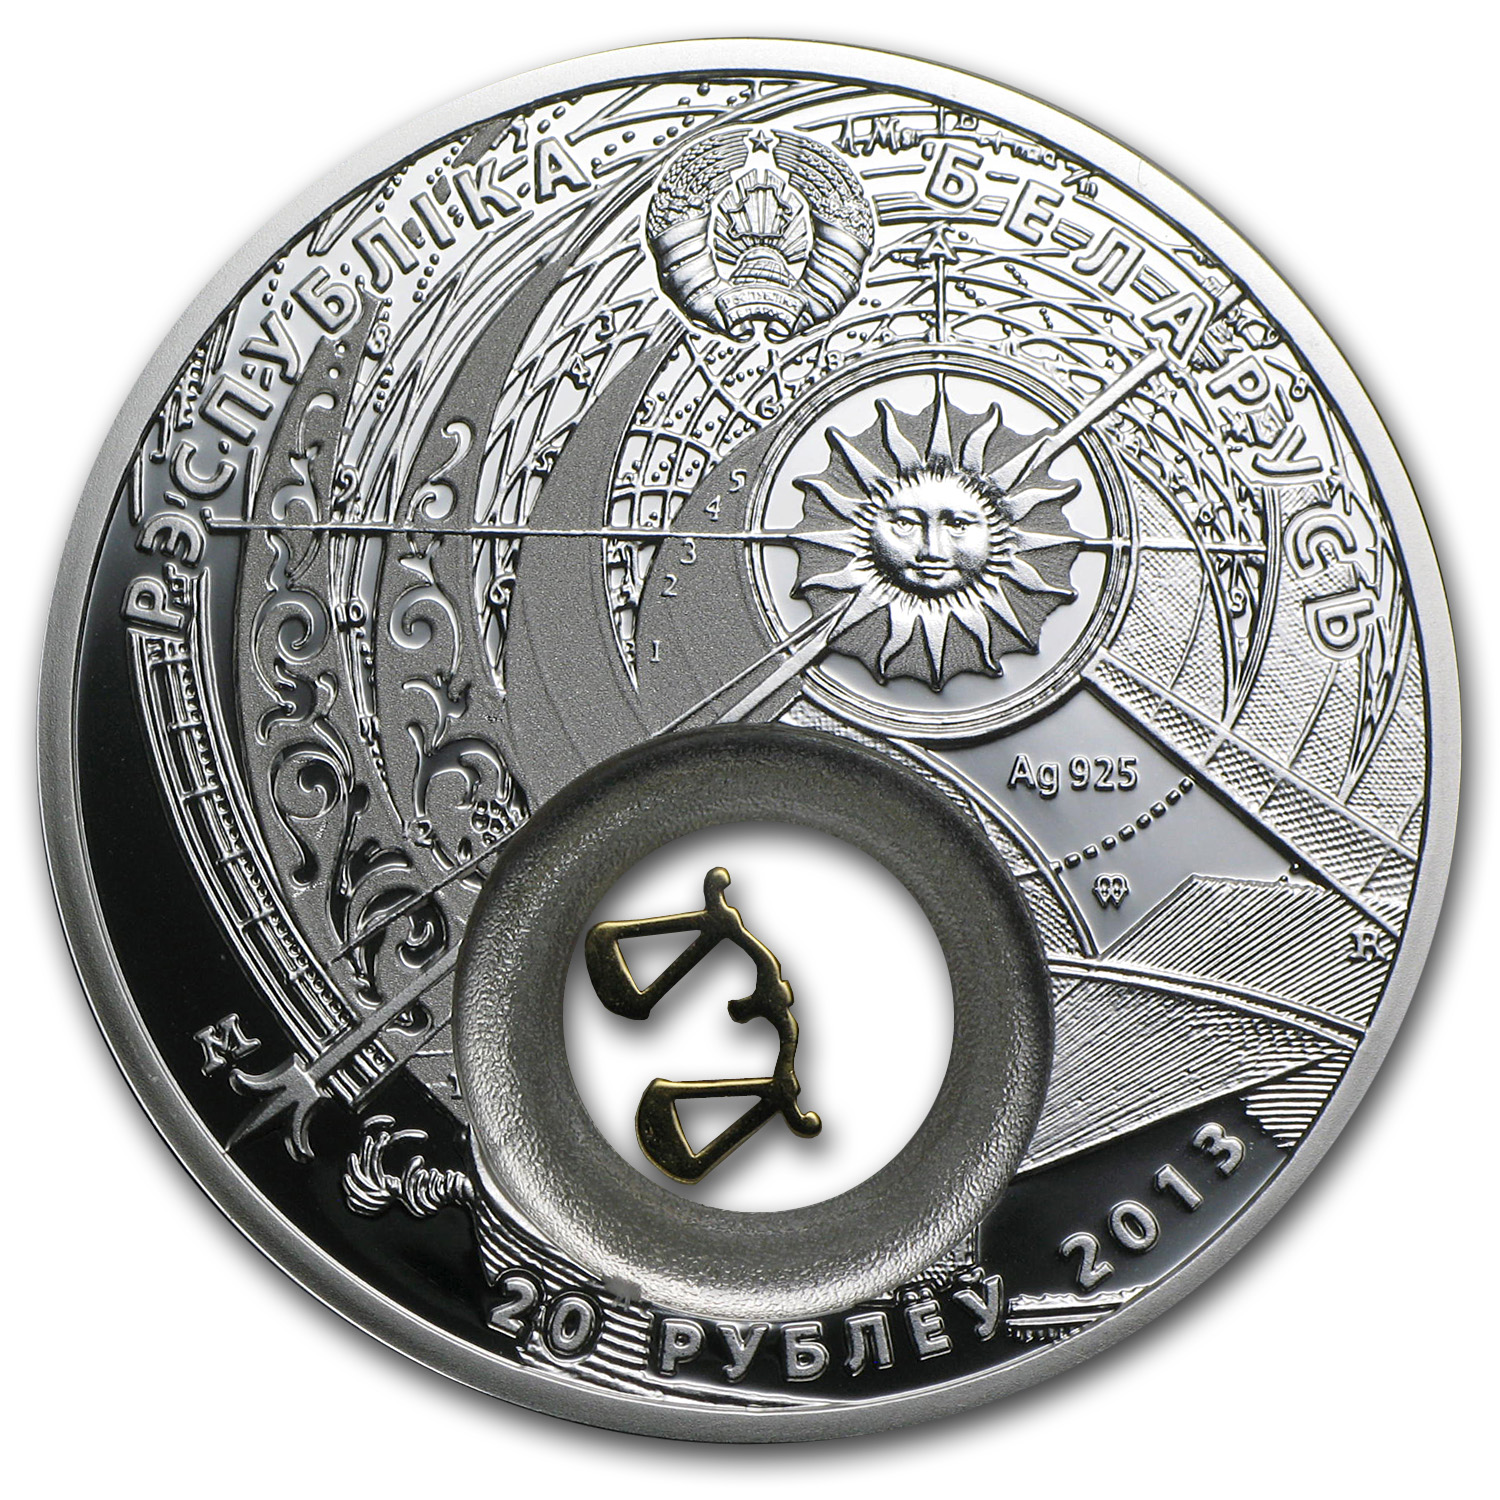 Belarus 2013 Silver Proof 20 Rubles Zodiac Signs - Libra